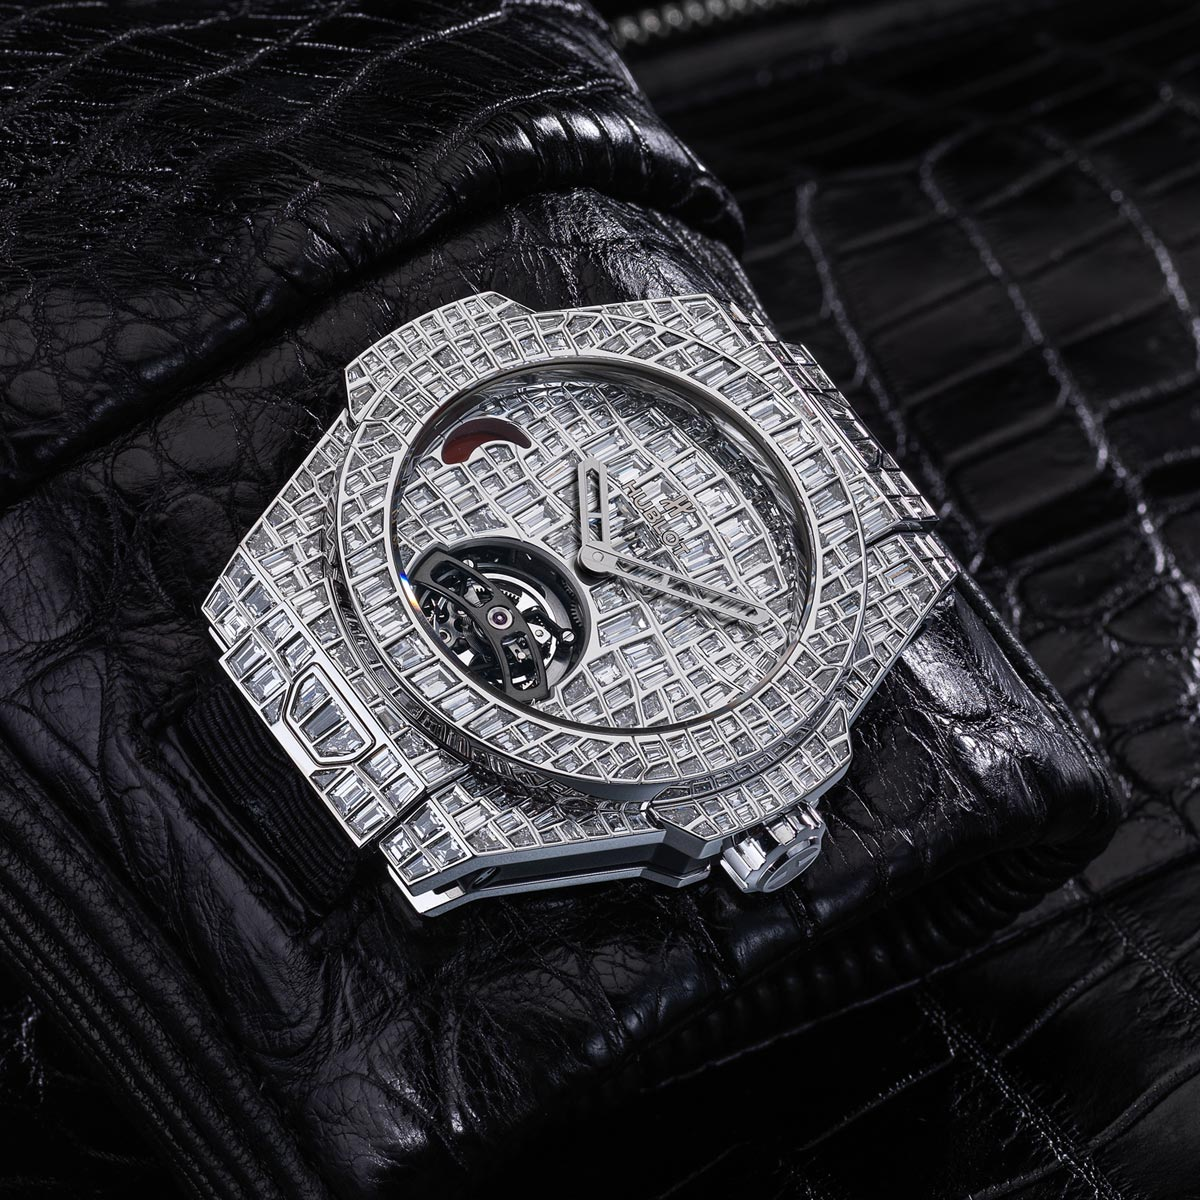 La Cote des Montres : Photo - Hublot Big Bang Tourbillon Croco High Jewellery